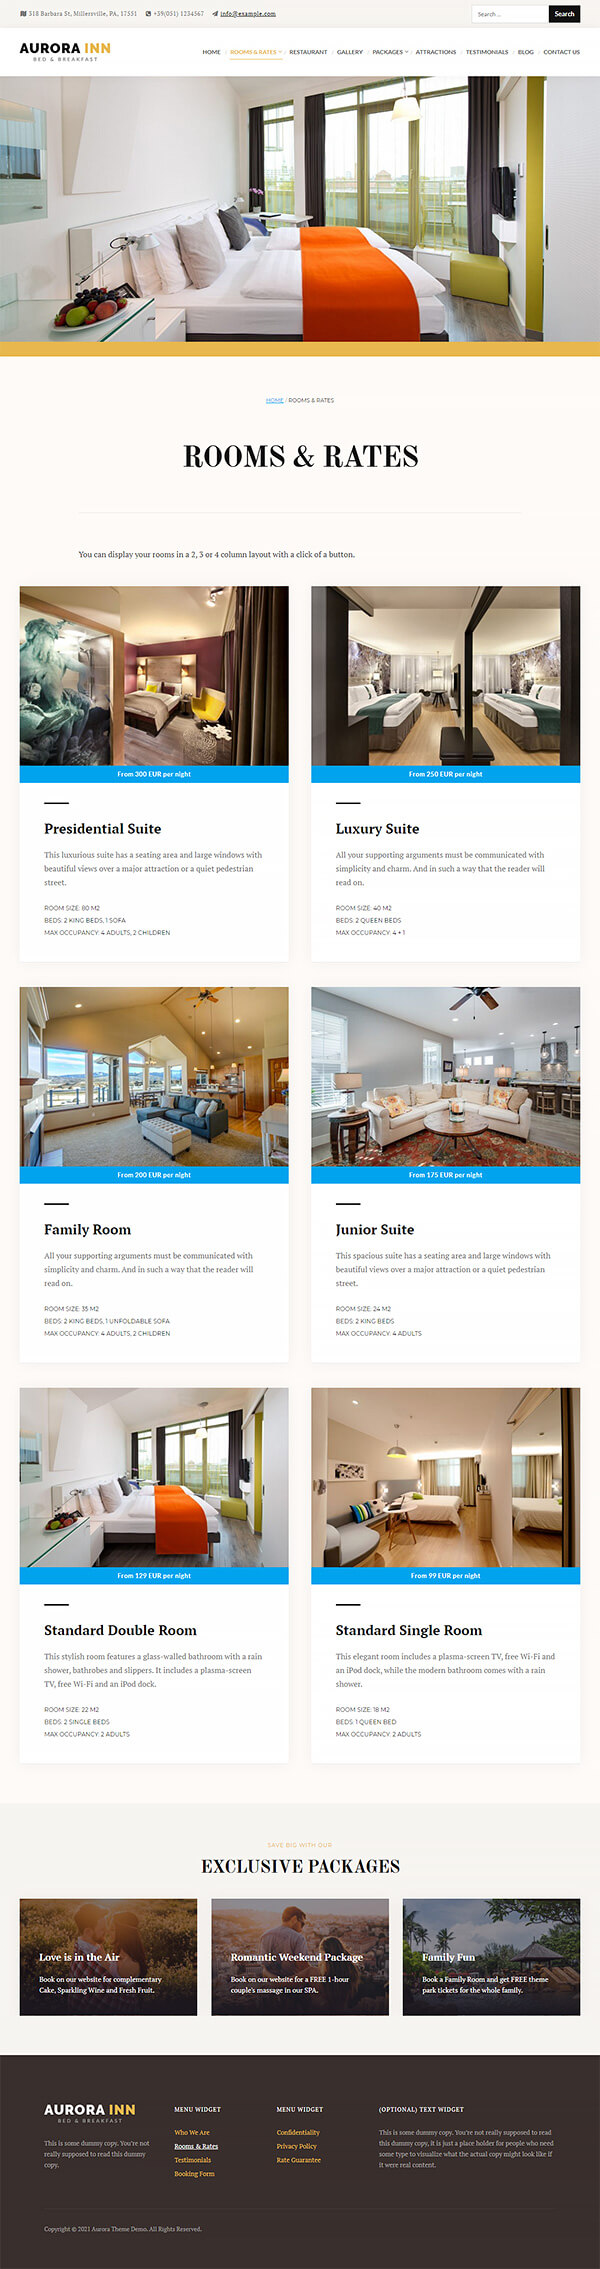 Aurora Hotel WordPress Theme Preview: Screenshot of Rooms & Rates Page